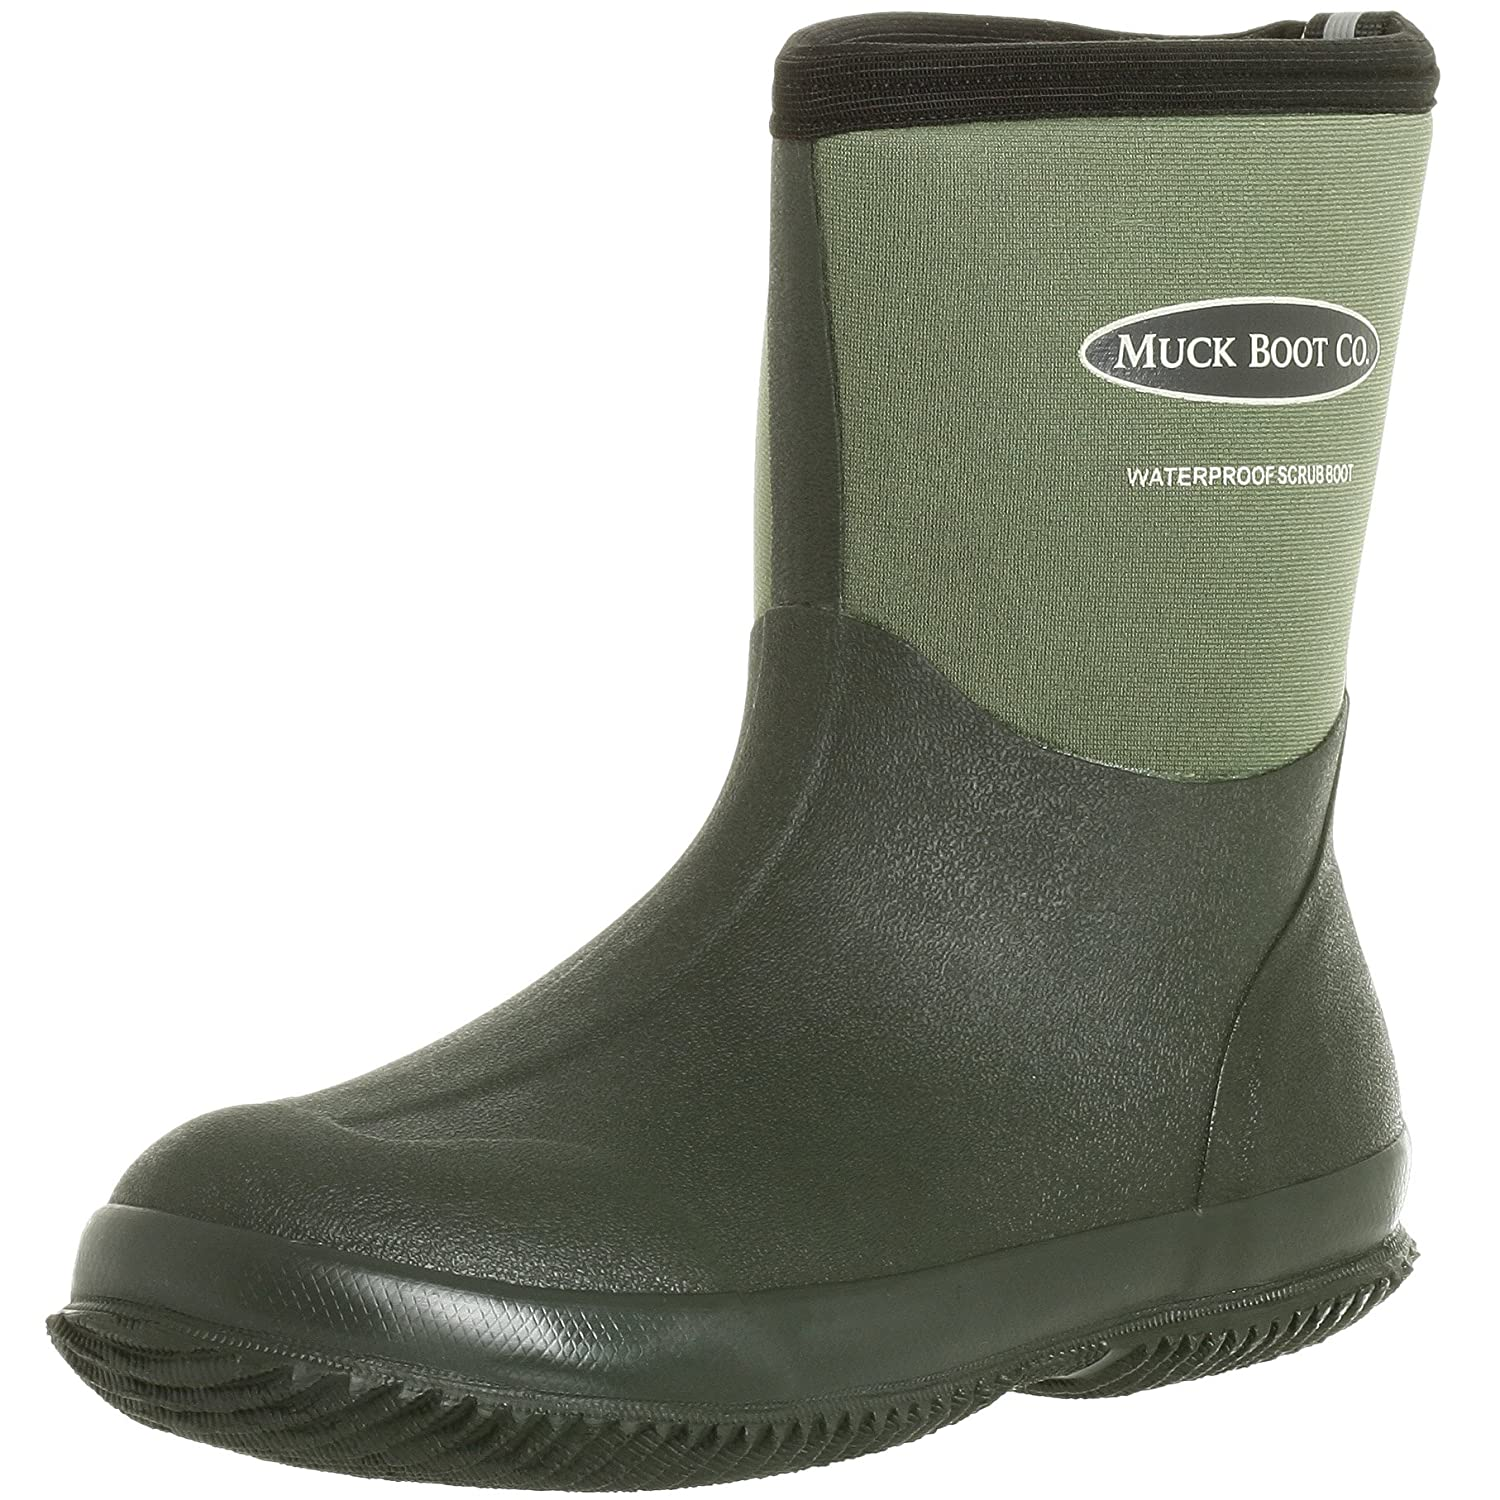 Muck Boots Reviews Uk - Boot Hto